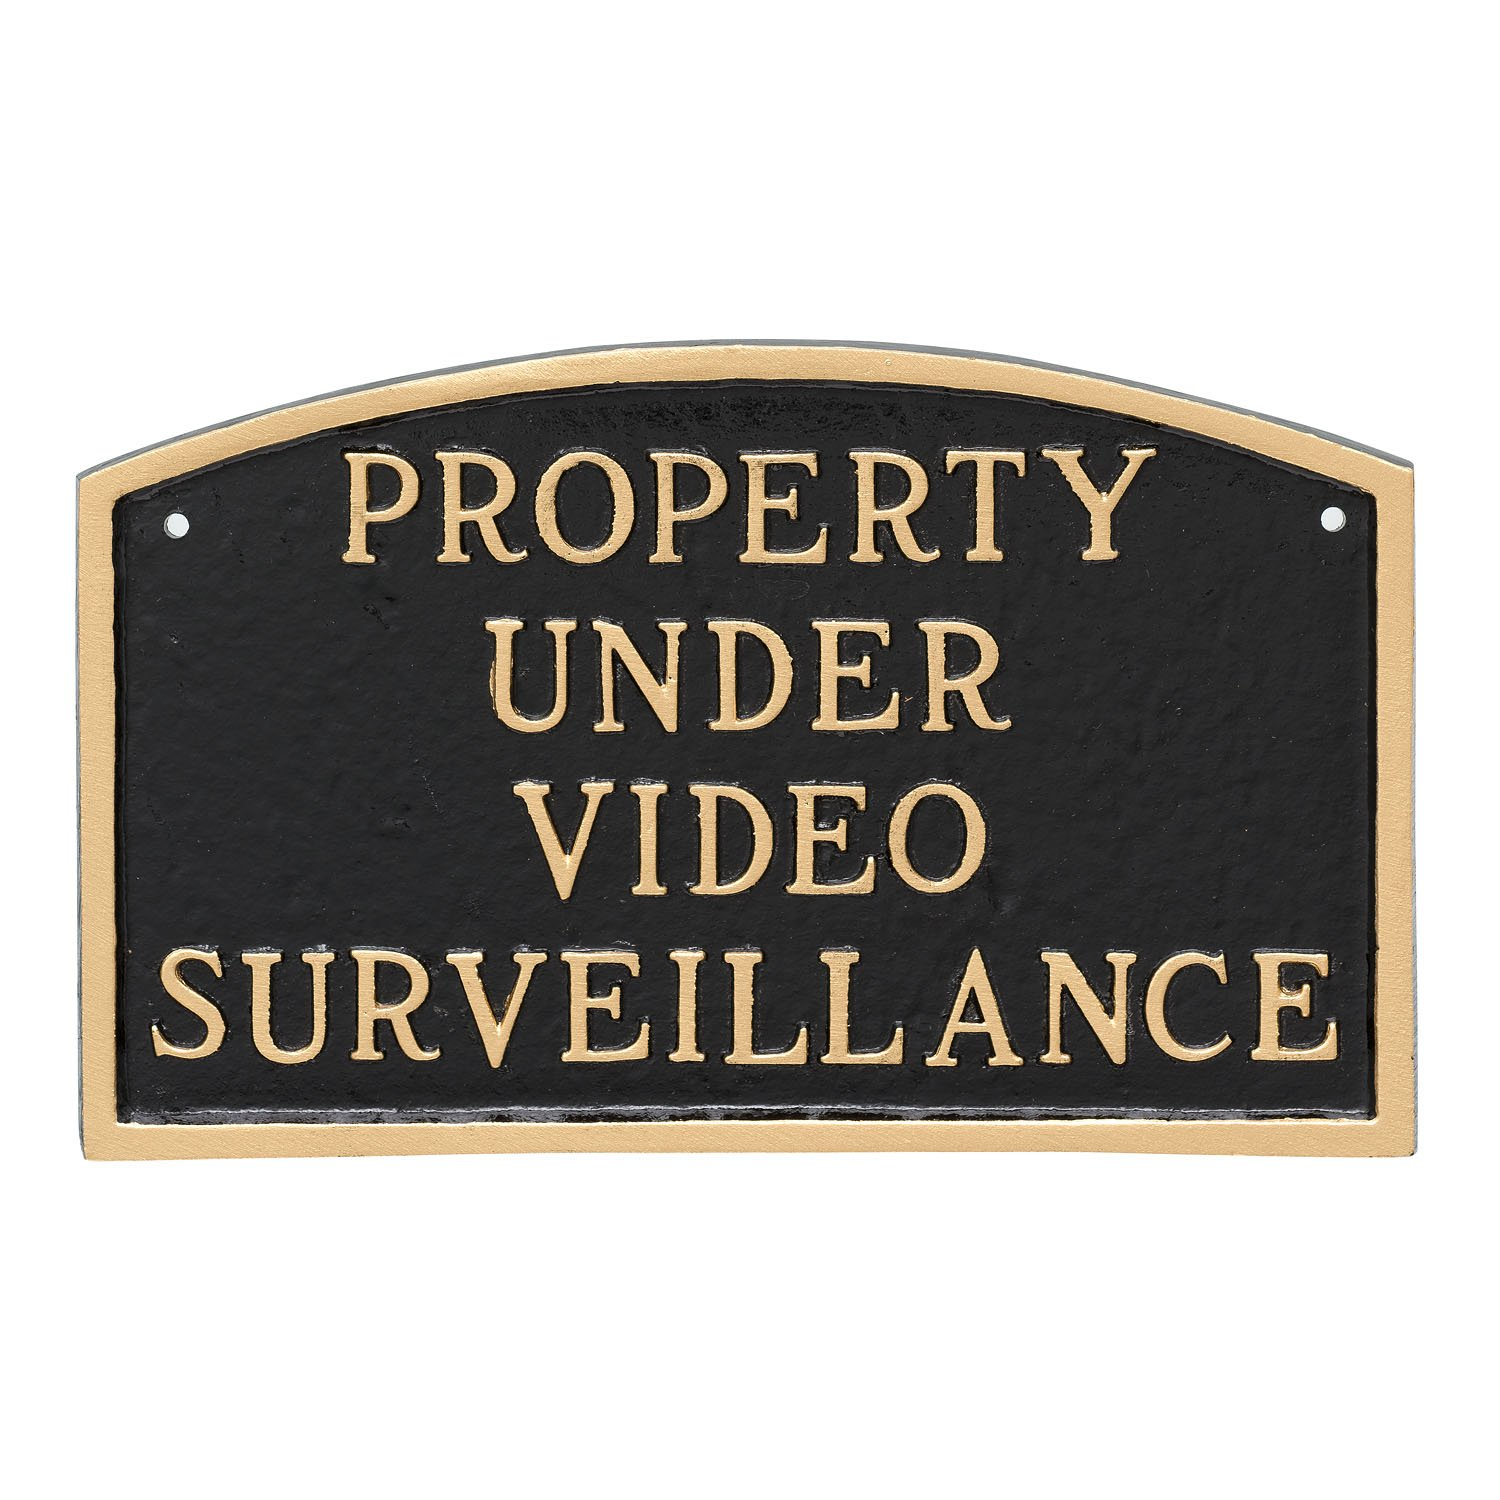 Montague Metal Products Property Under Video Surveillance Statement Plaque, Black with Gold Letter, 5.5'' x 9'' by Montague Metal Products